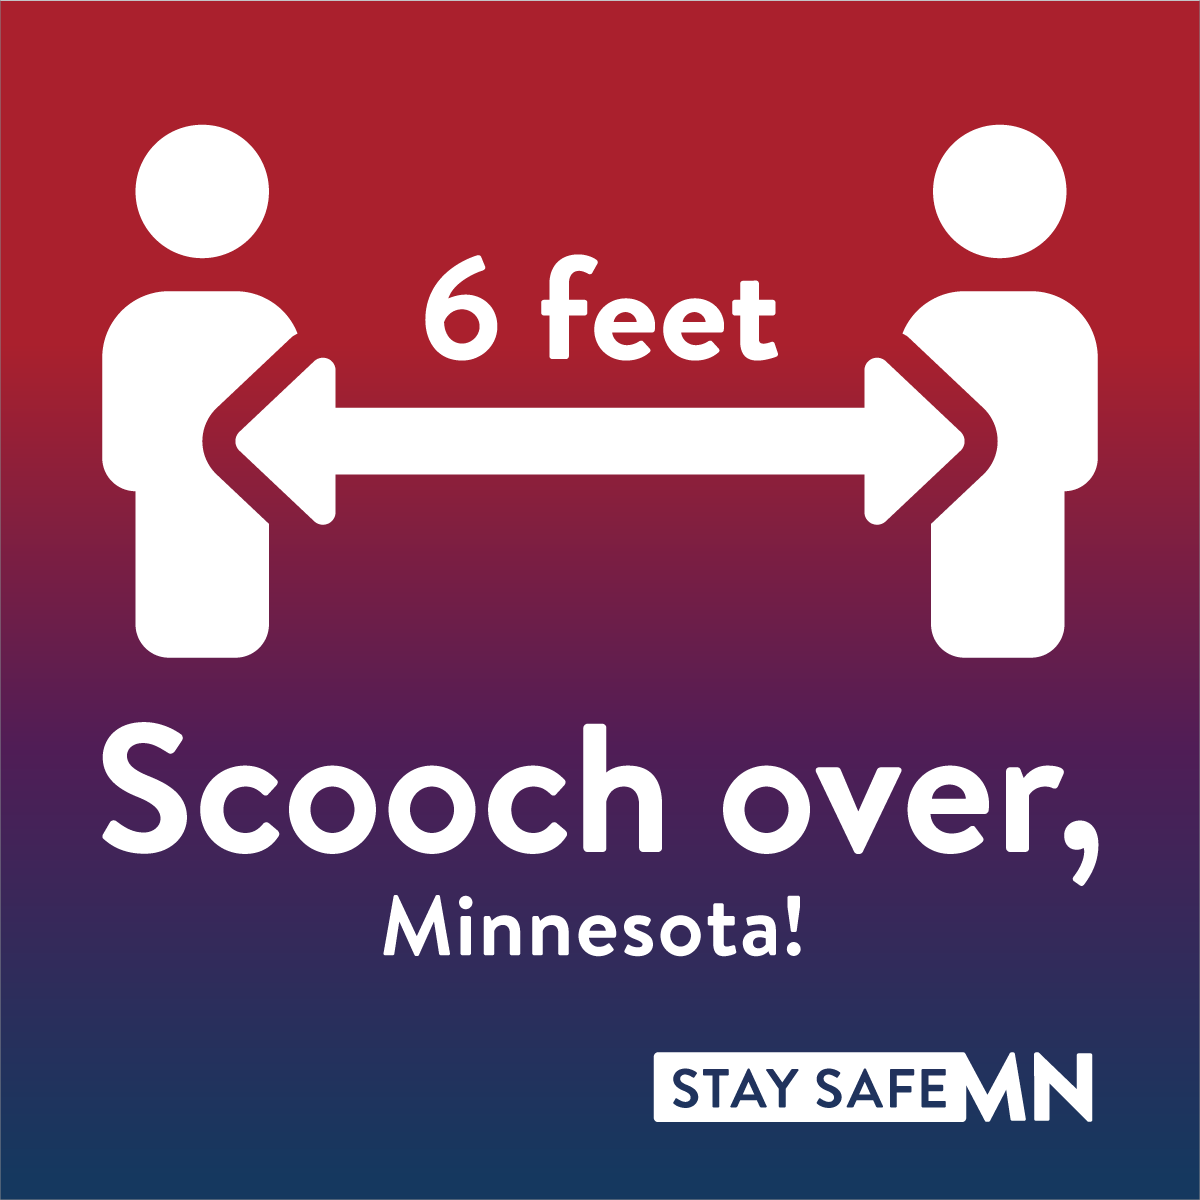 Scooch over, Minnesota! Stay 6 feet apart.